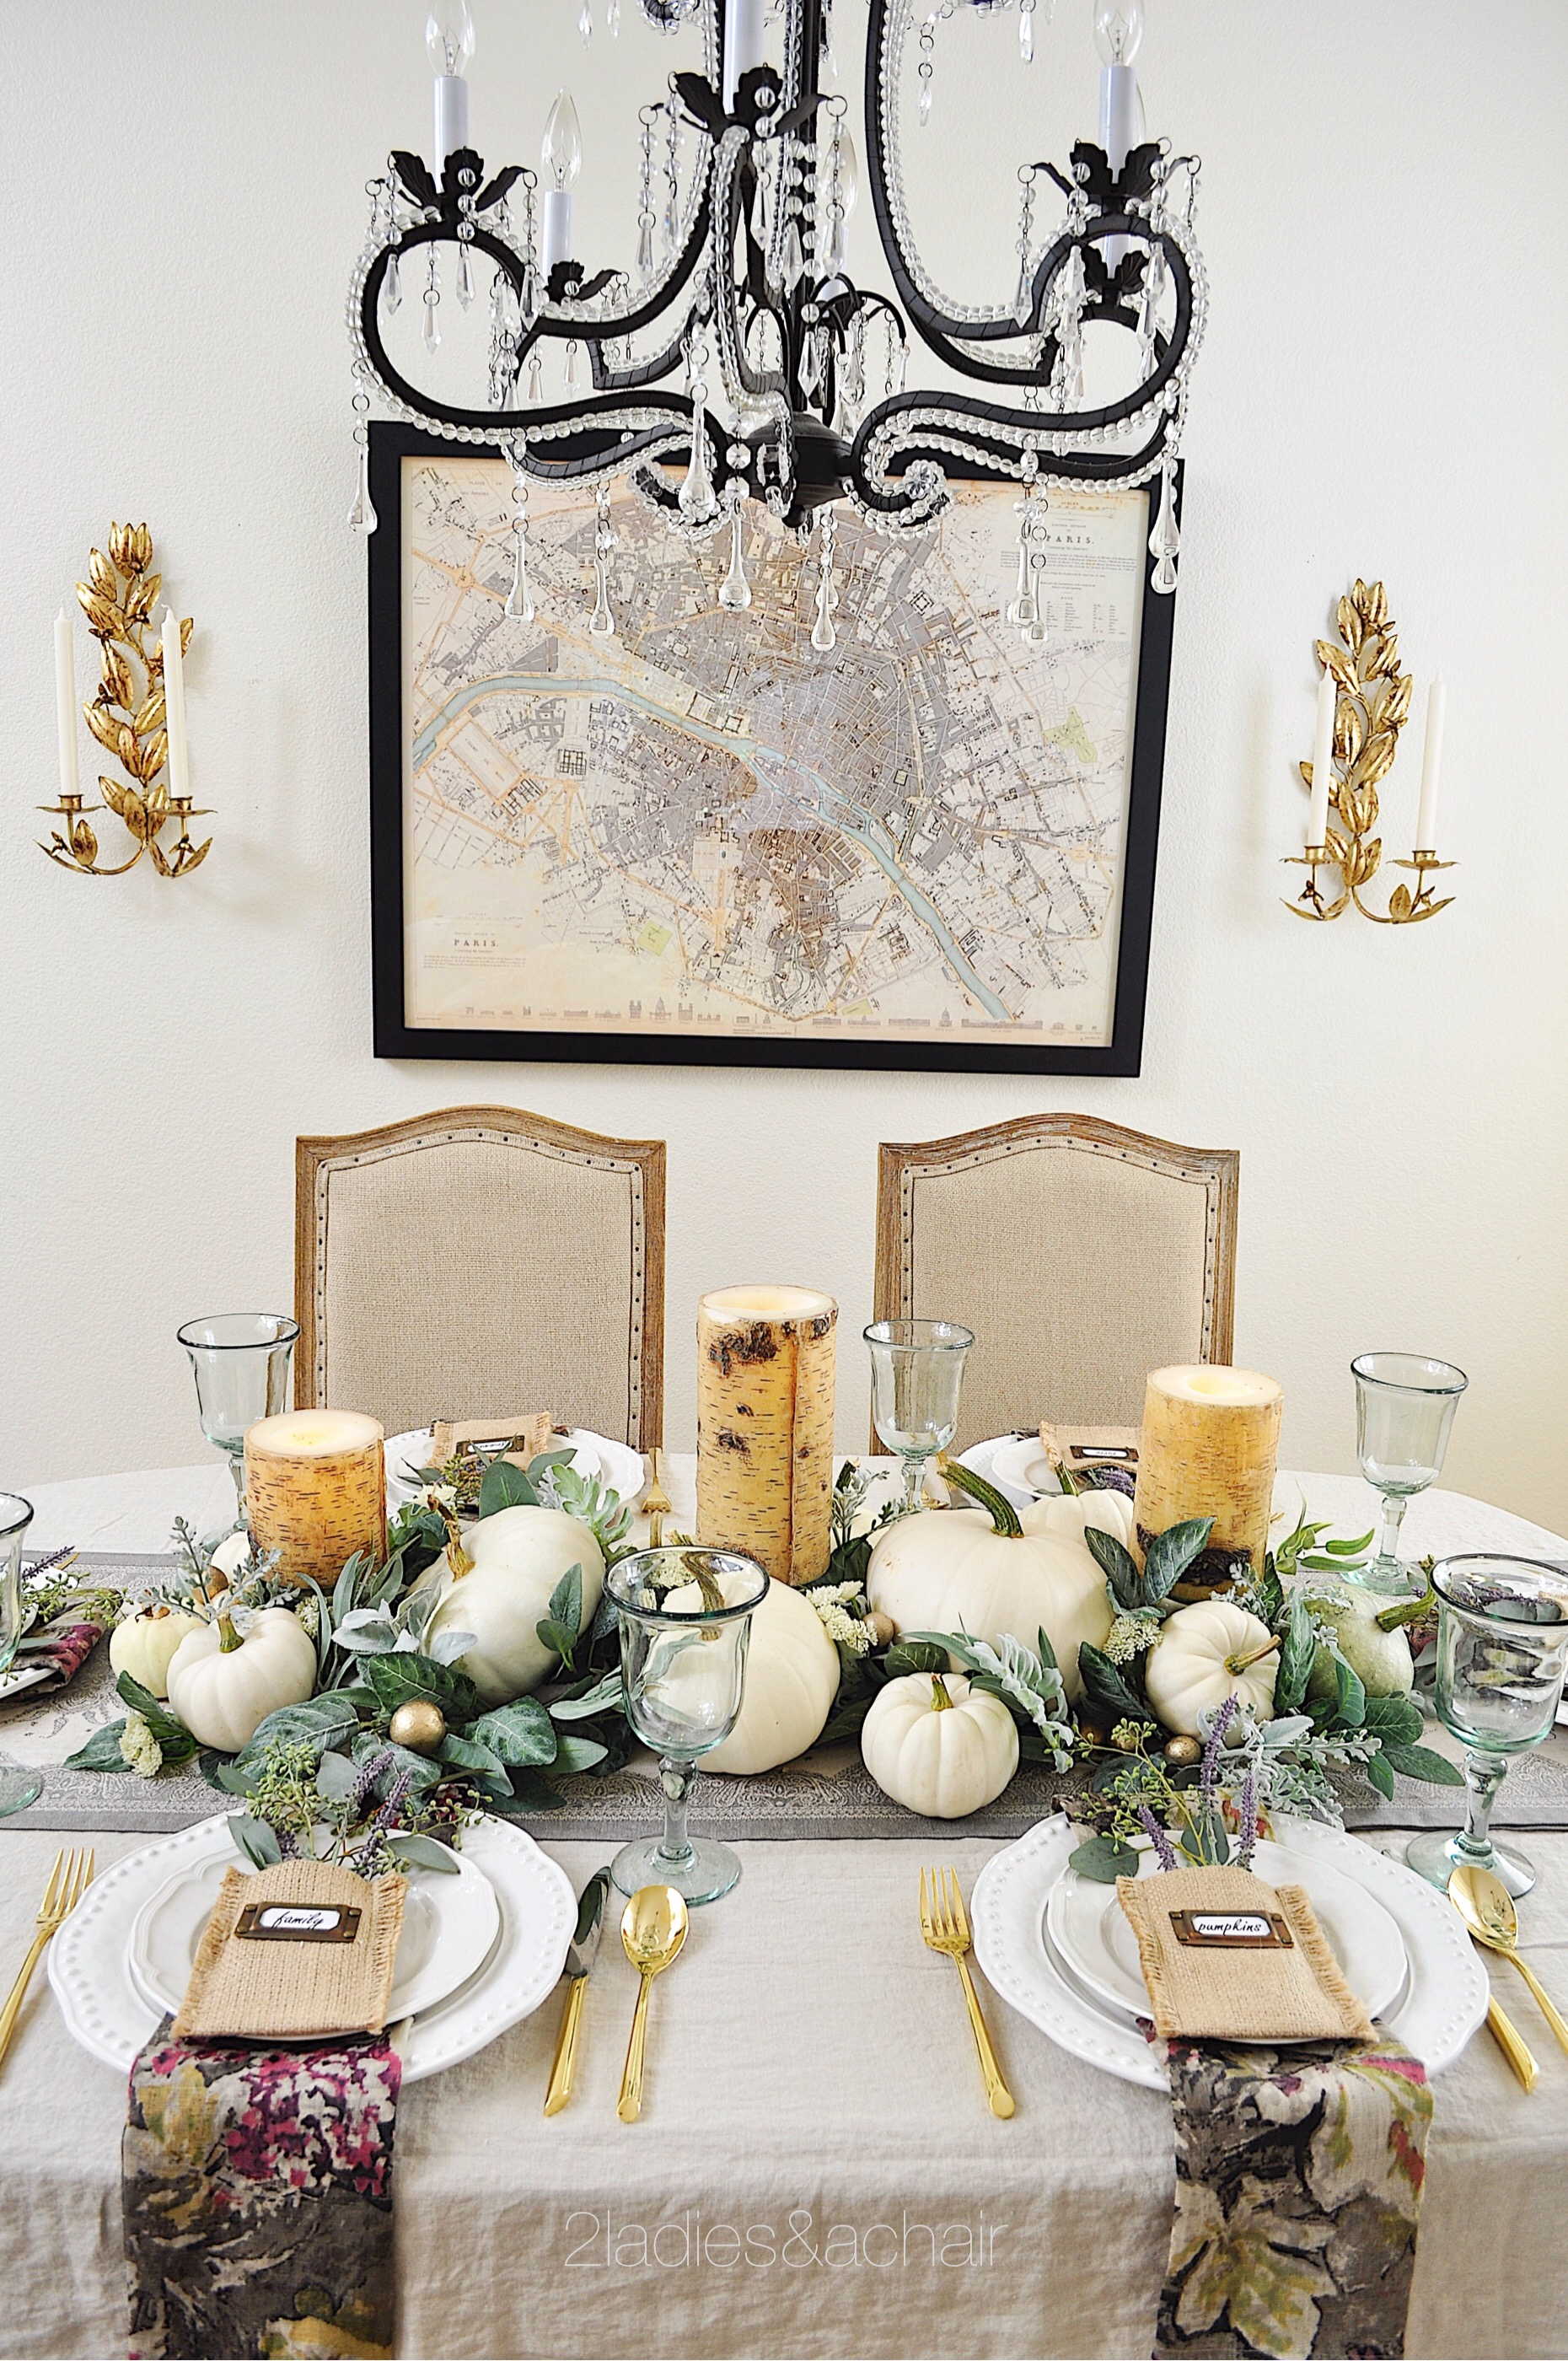 A Simple Beautiful Way To Decorate Your Dining Table For Fall 2 Ladies A Chair